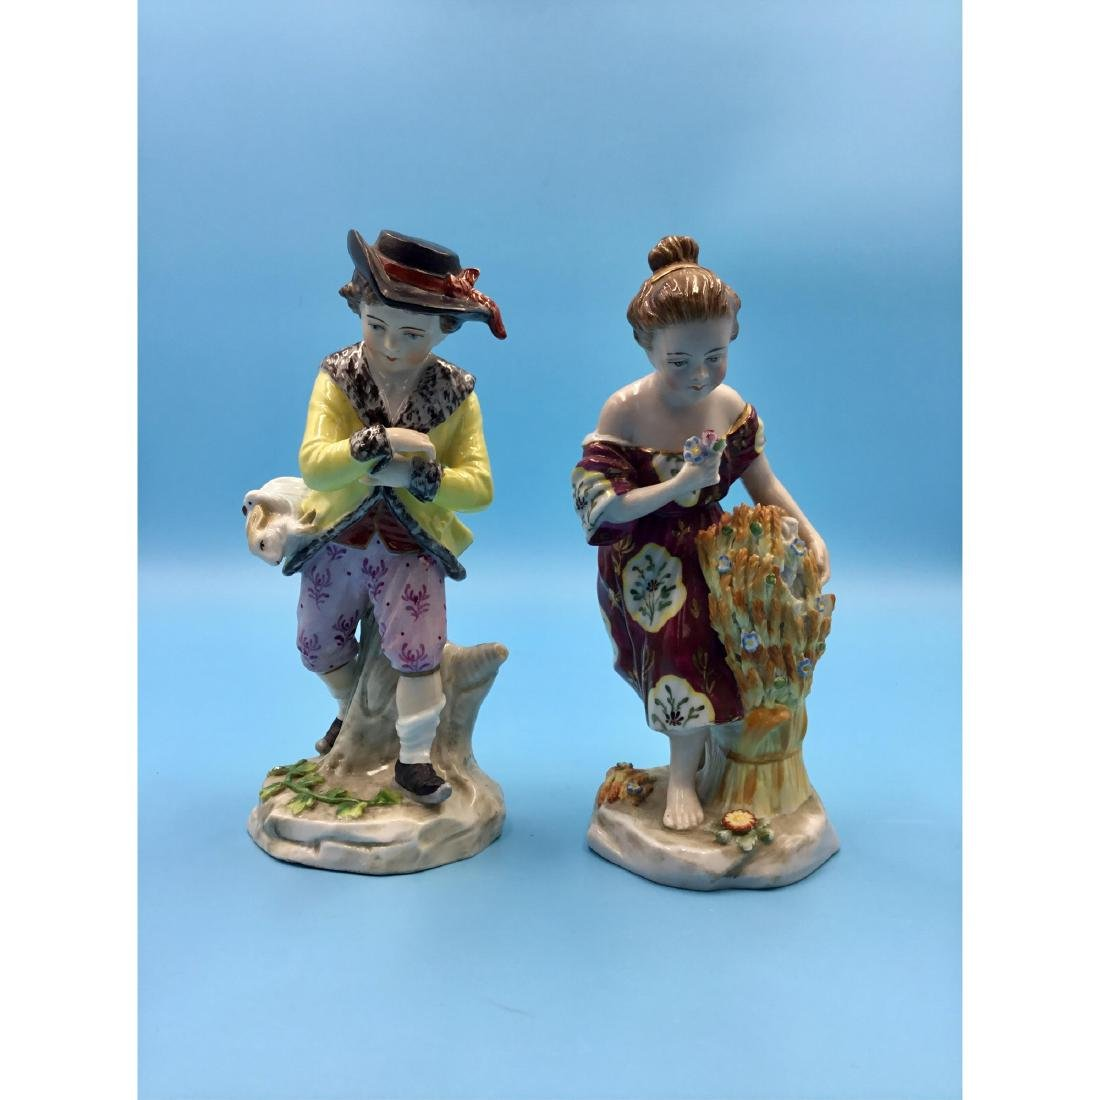 PAIR OF SITZENDORF GERMAN PORCELAIN FIGURINES